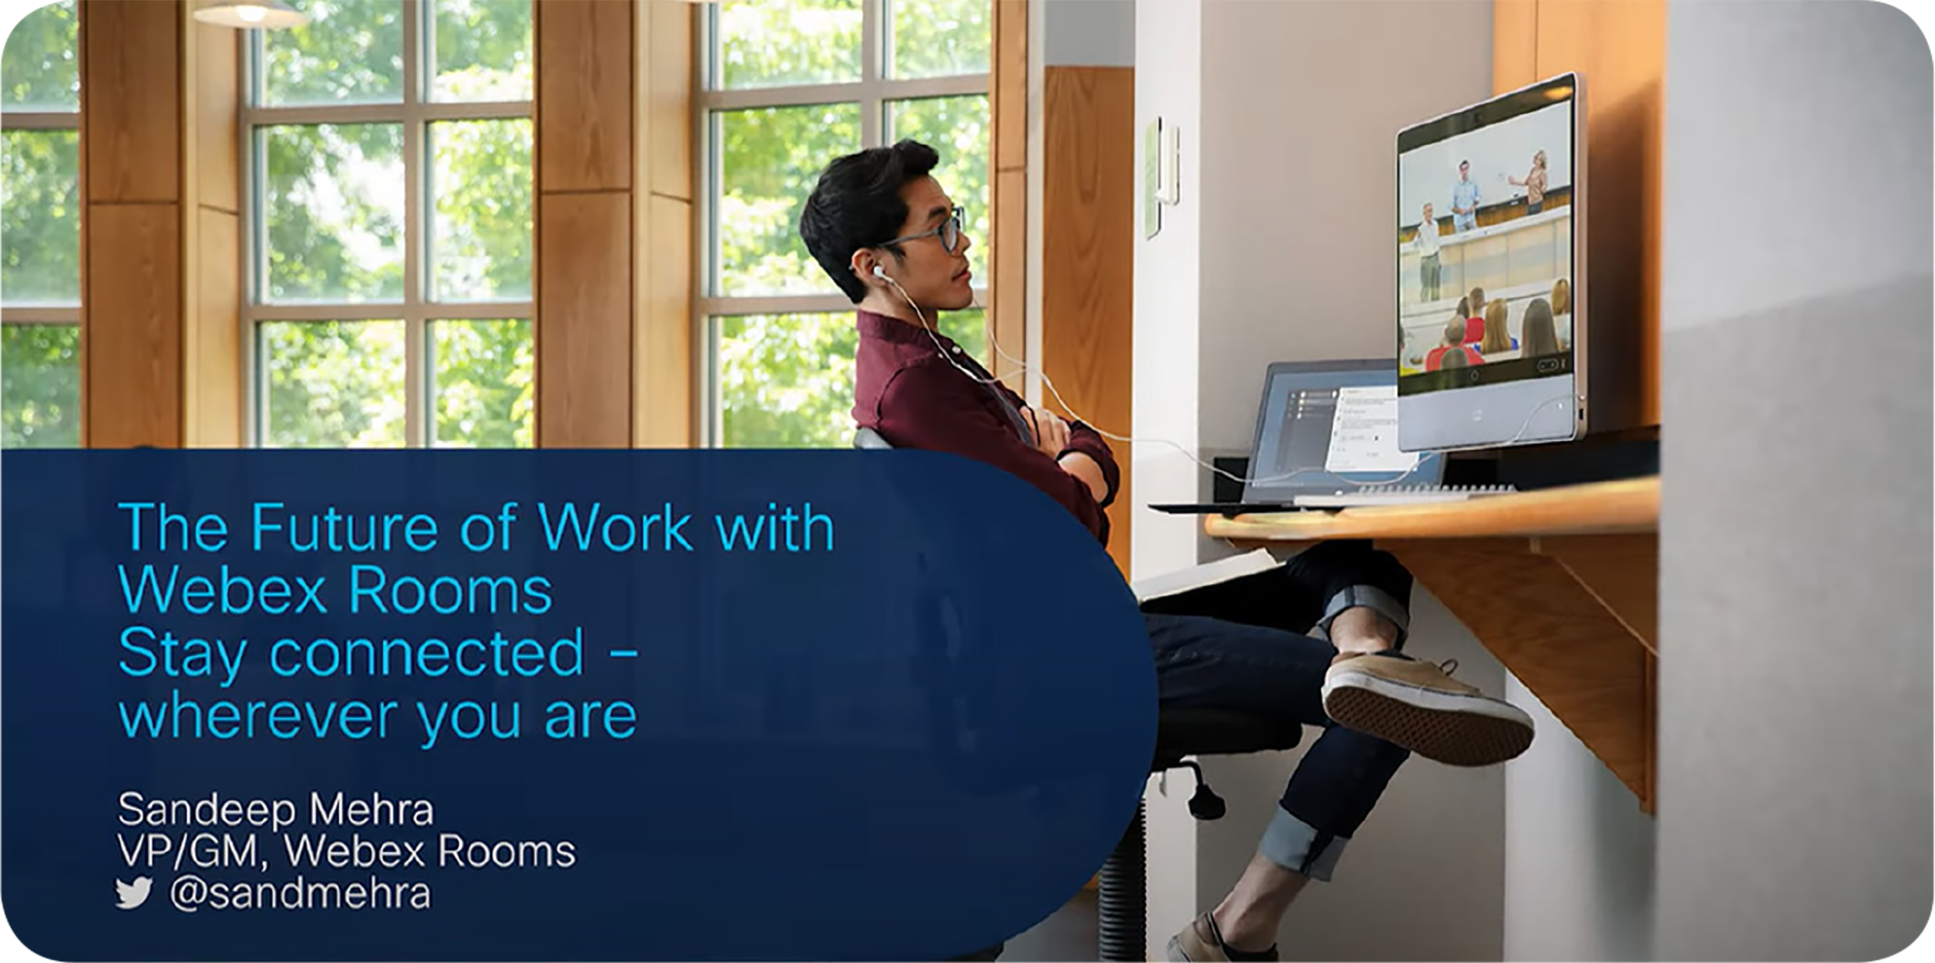 The Future of with Webex Rooms